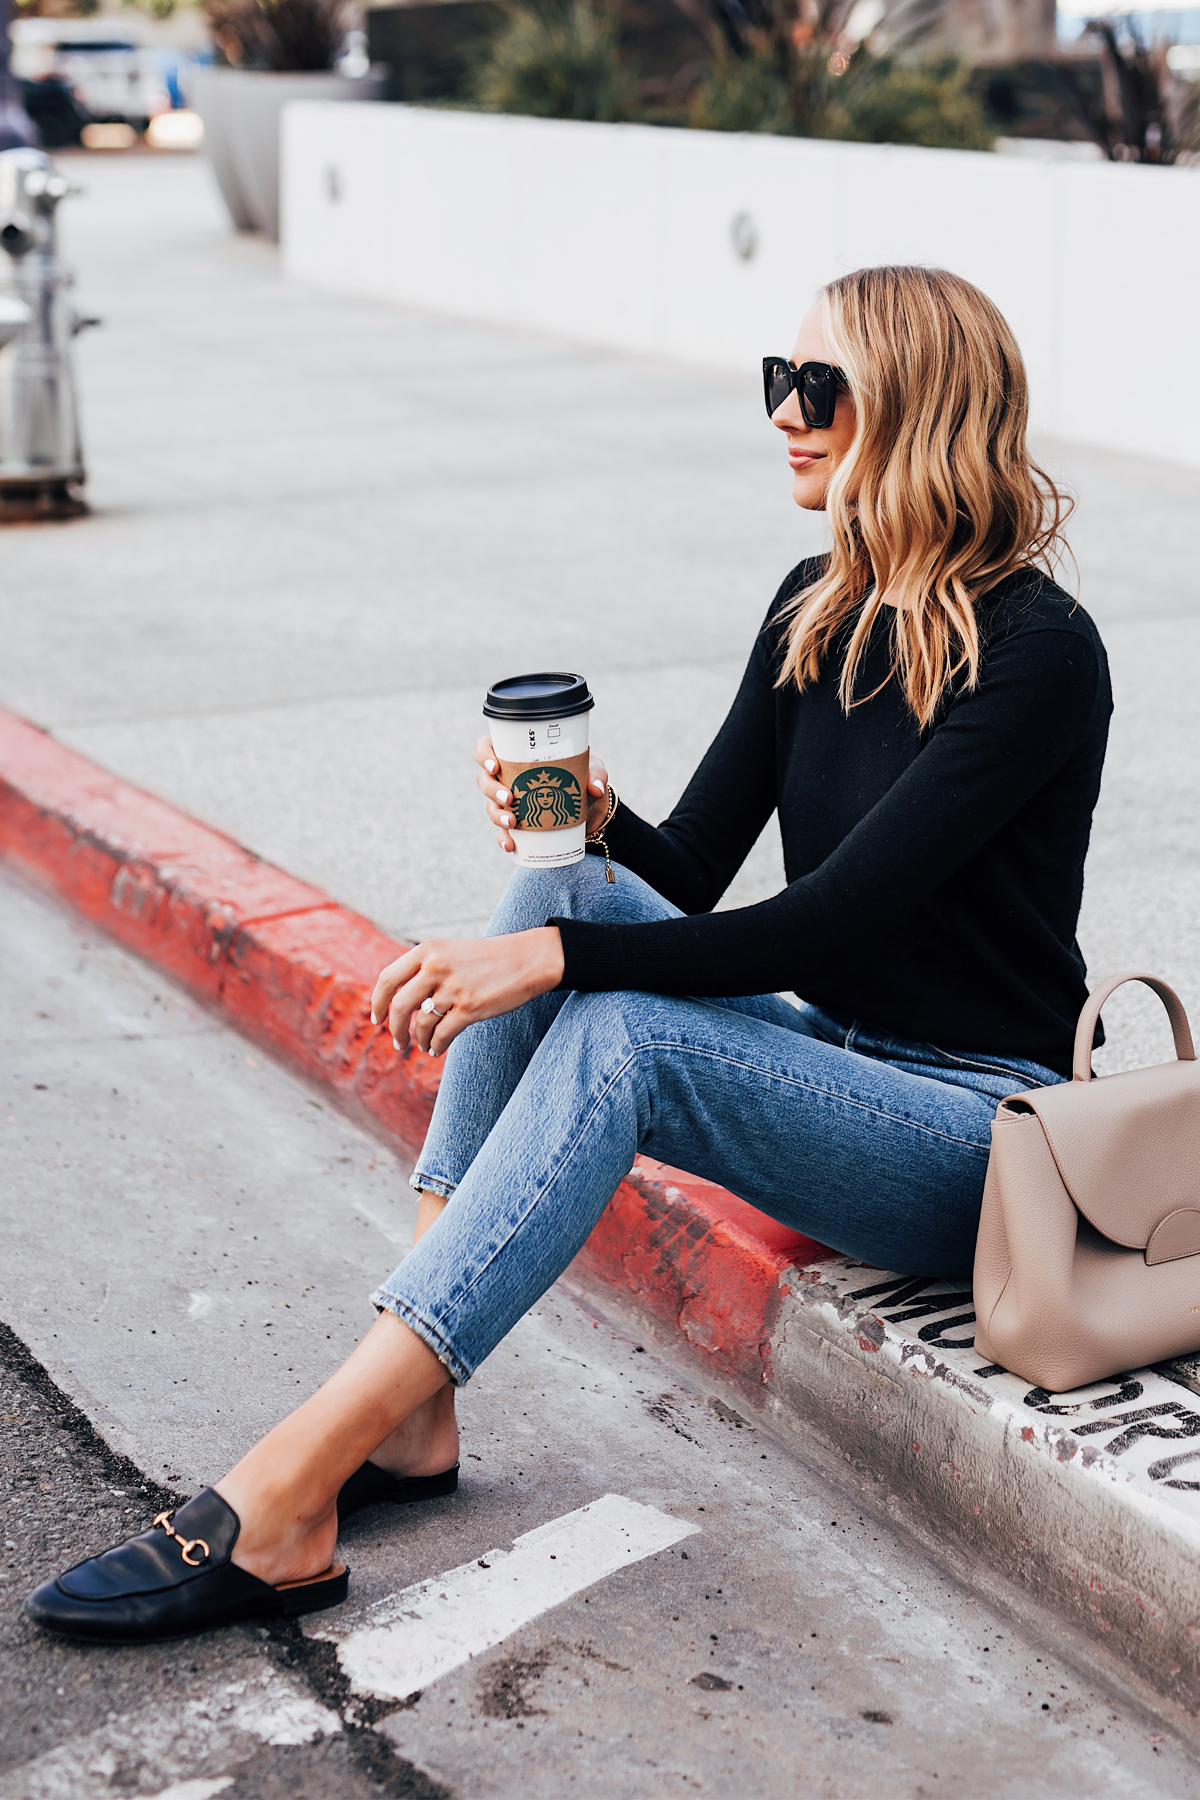 Blonde Woman Wearing Everlane Black Cashmere Sweater Levis 501 Jeans Gucci Princetown Mules Black Fashion Jackson San Diego Fashion Blogger Street Style